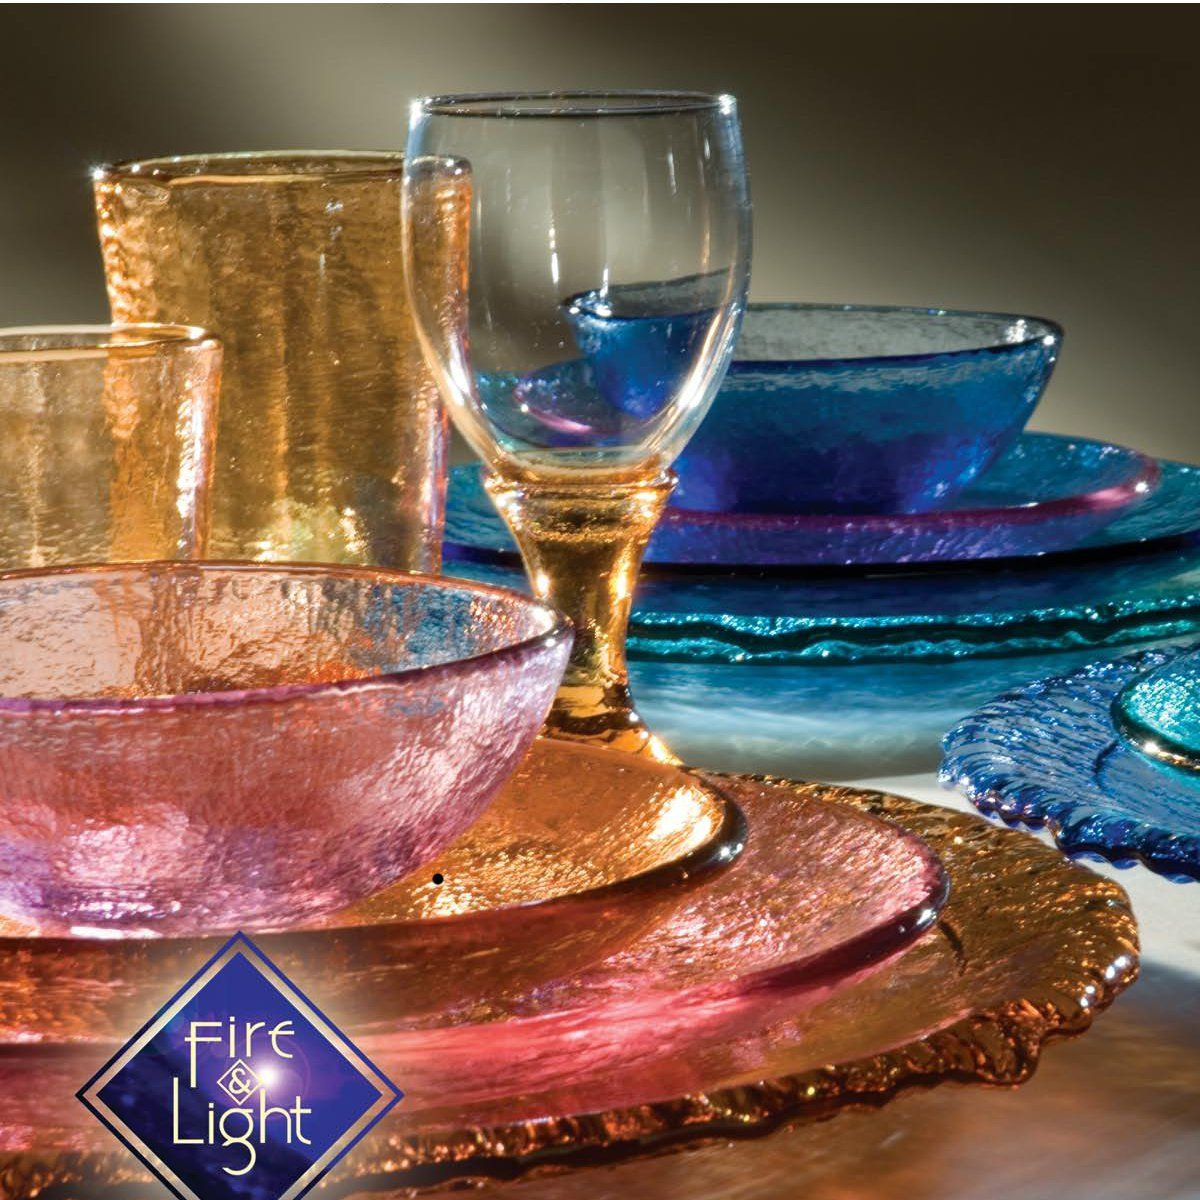 Image Detail For  Kslg Has A $ 400 Set Of Fire Light Glassware To Give Away  On Thursday .